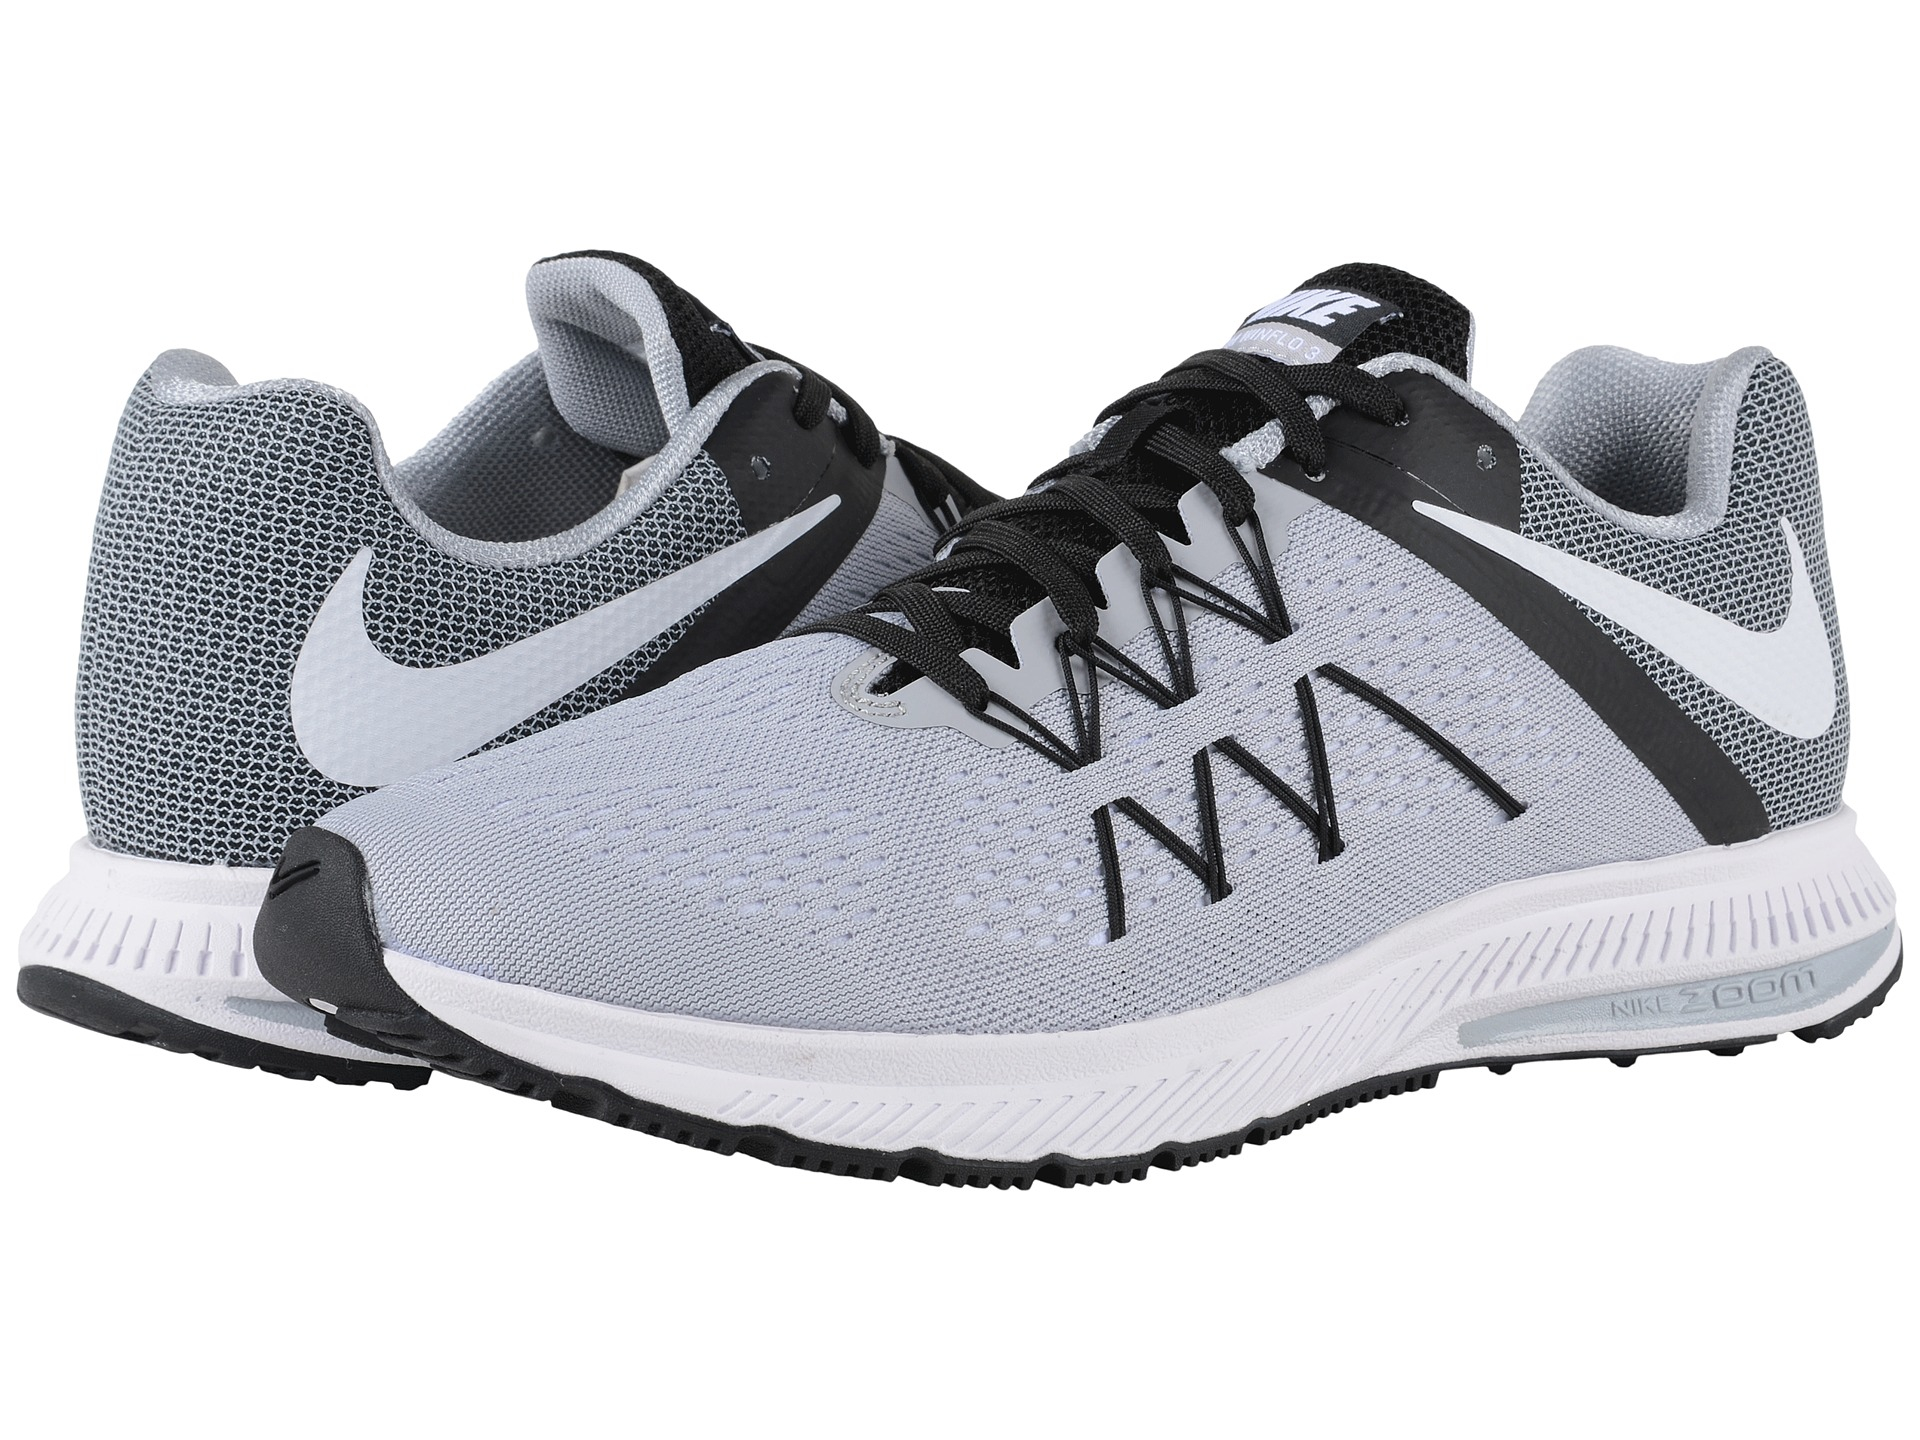 new arrival 449e9 faaac ... Lyst - Nike Zoom Winflo 3 in Gray for Men ...